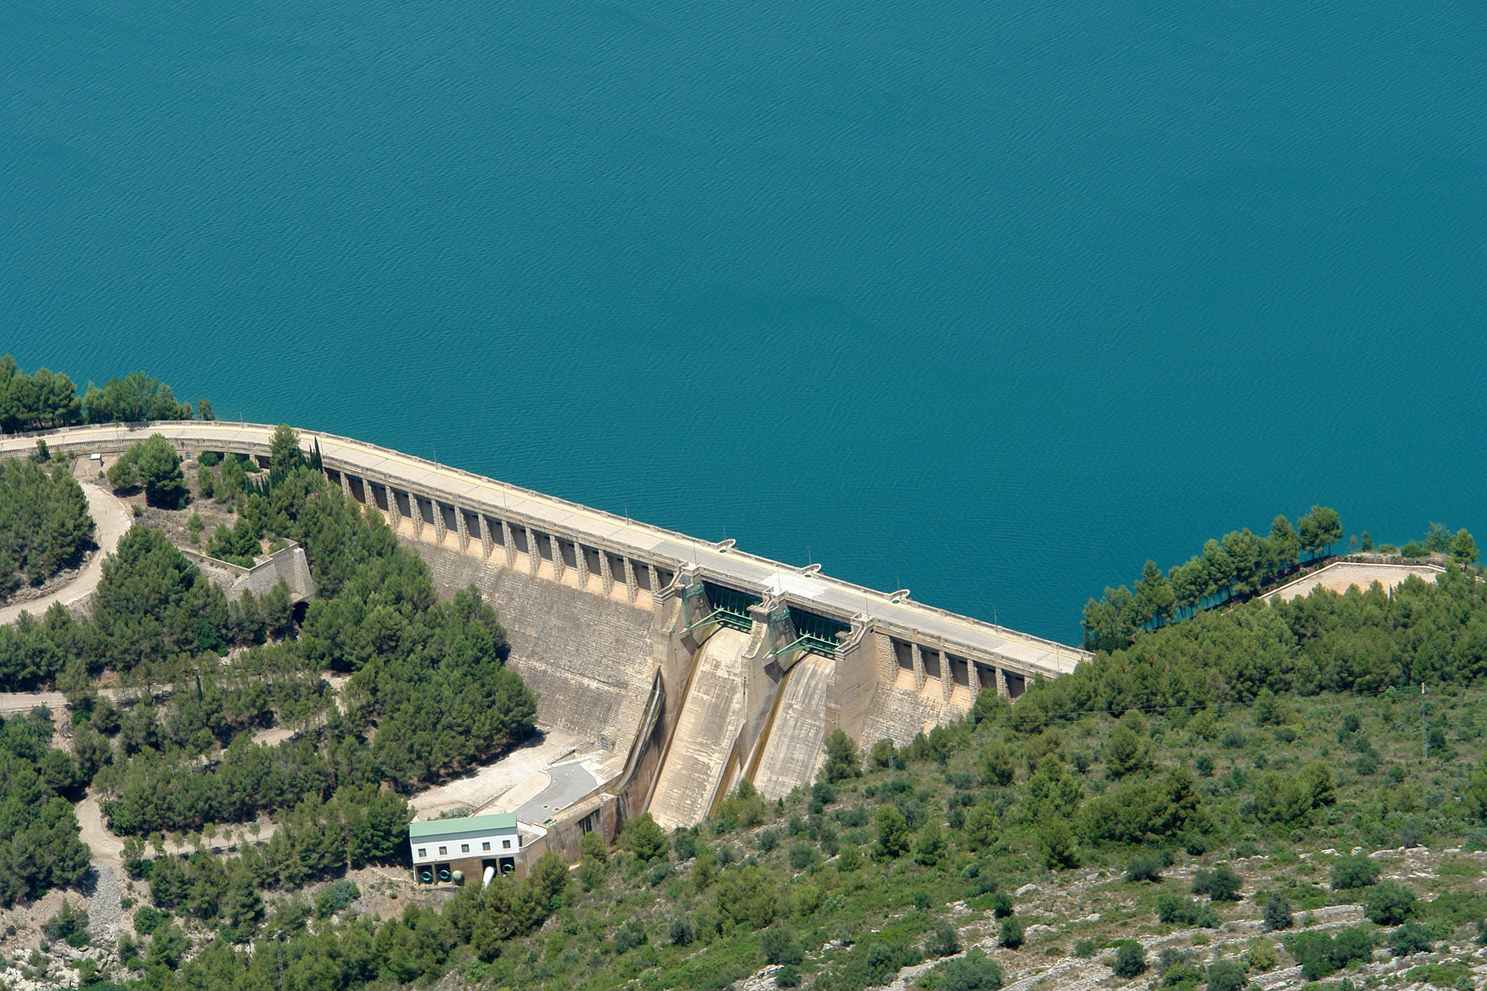 http://zeppeline.es/wp-content/uploads/2015/09/vista-aerea-de-embalse-video-fotografia-aerea-2.jpg